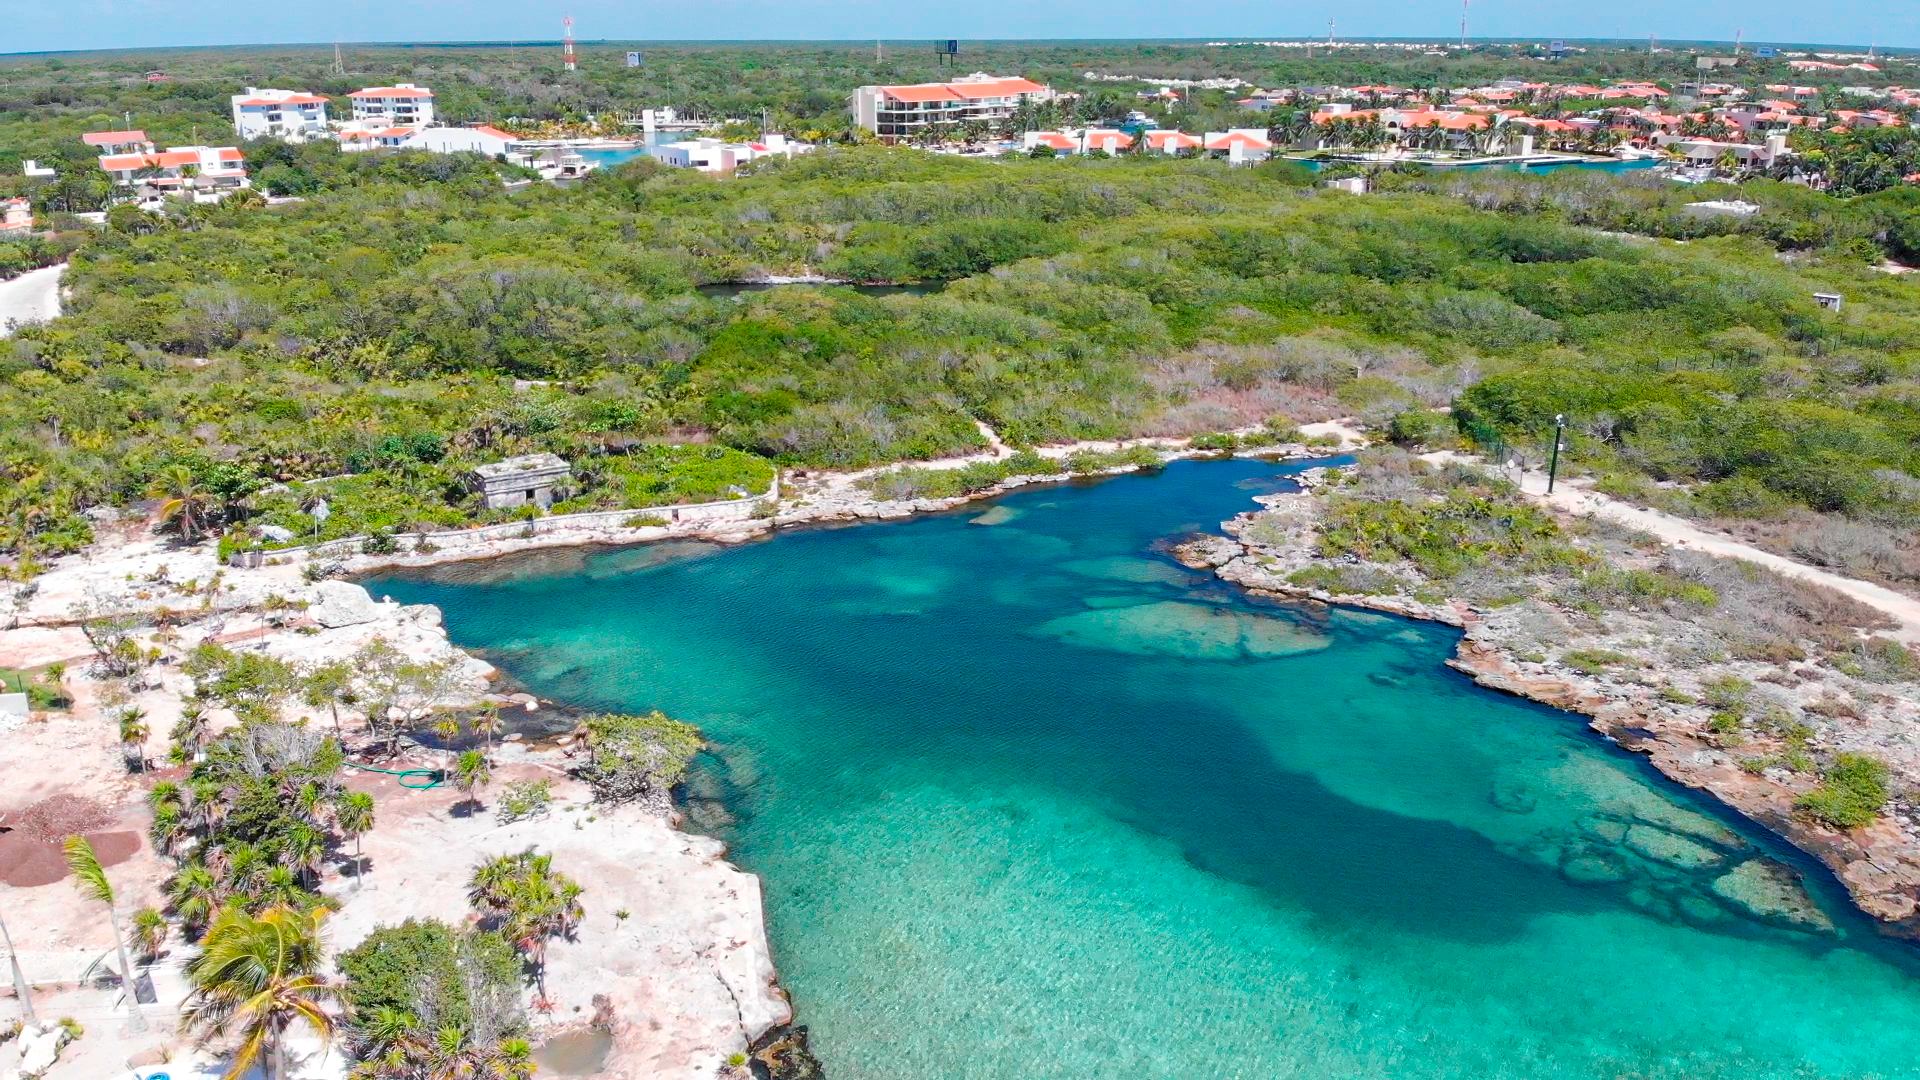 "Two Residential waterfront Lots for sale at inlet ''La Caleta''next to an authentically Mayan Temple and a Cenote. A total of only 7 waterfront lots are allowed on this unique gated development inside of Puerto Aventuras, a gated Beach, Marina and Golf Resort community in the Mexican Caribbean between Playa del Carmen and Tulum. Great investment opportunity for building two homes or one Large Ocean Front Residence. You also can purchase an additional marina front lot one minute across the street to have your private yacht in your ""backyard"". The lots are within the new phase 4 of Puerto Aventuras; both have a spectacular view to the turquoise water of this inlet, Mayan Rivera. Puerto Aventuras is a gated community with 24 hour security, beach club, tennis courts, marina, golf, shopping area, restaurants and sailing club."